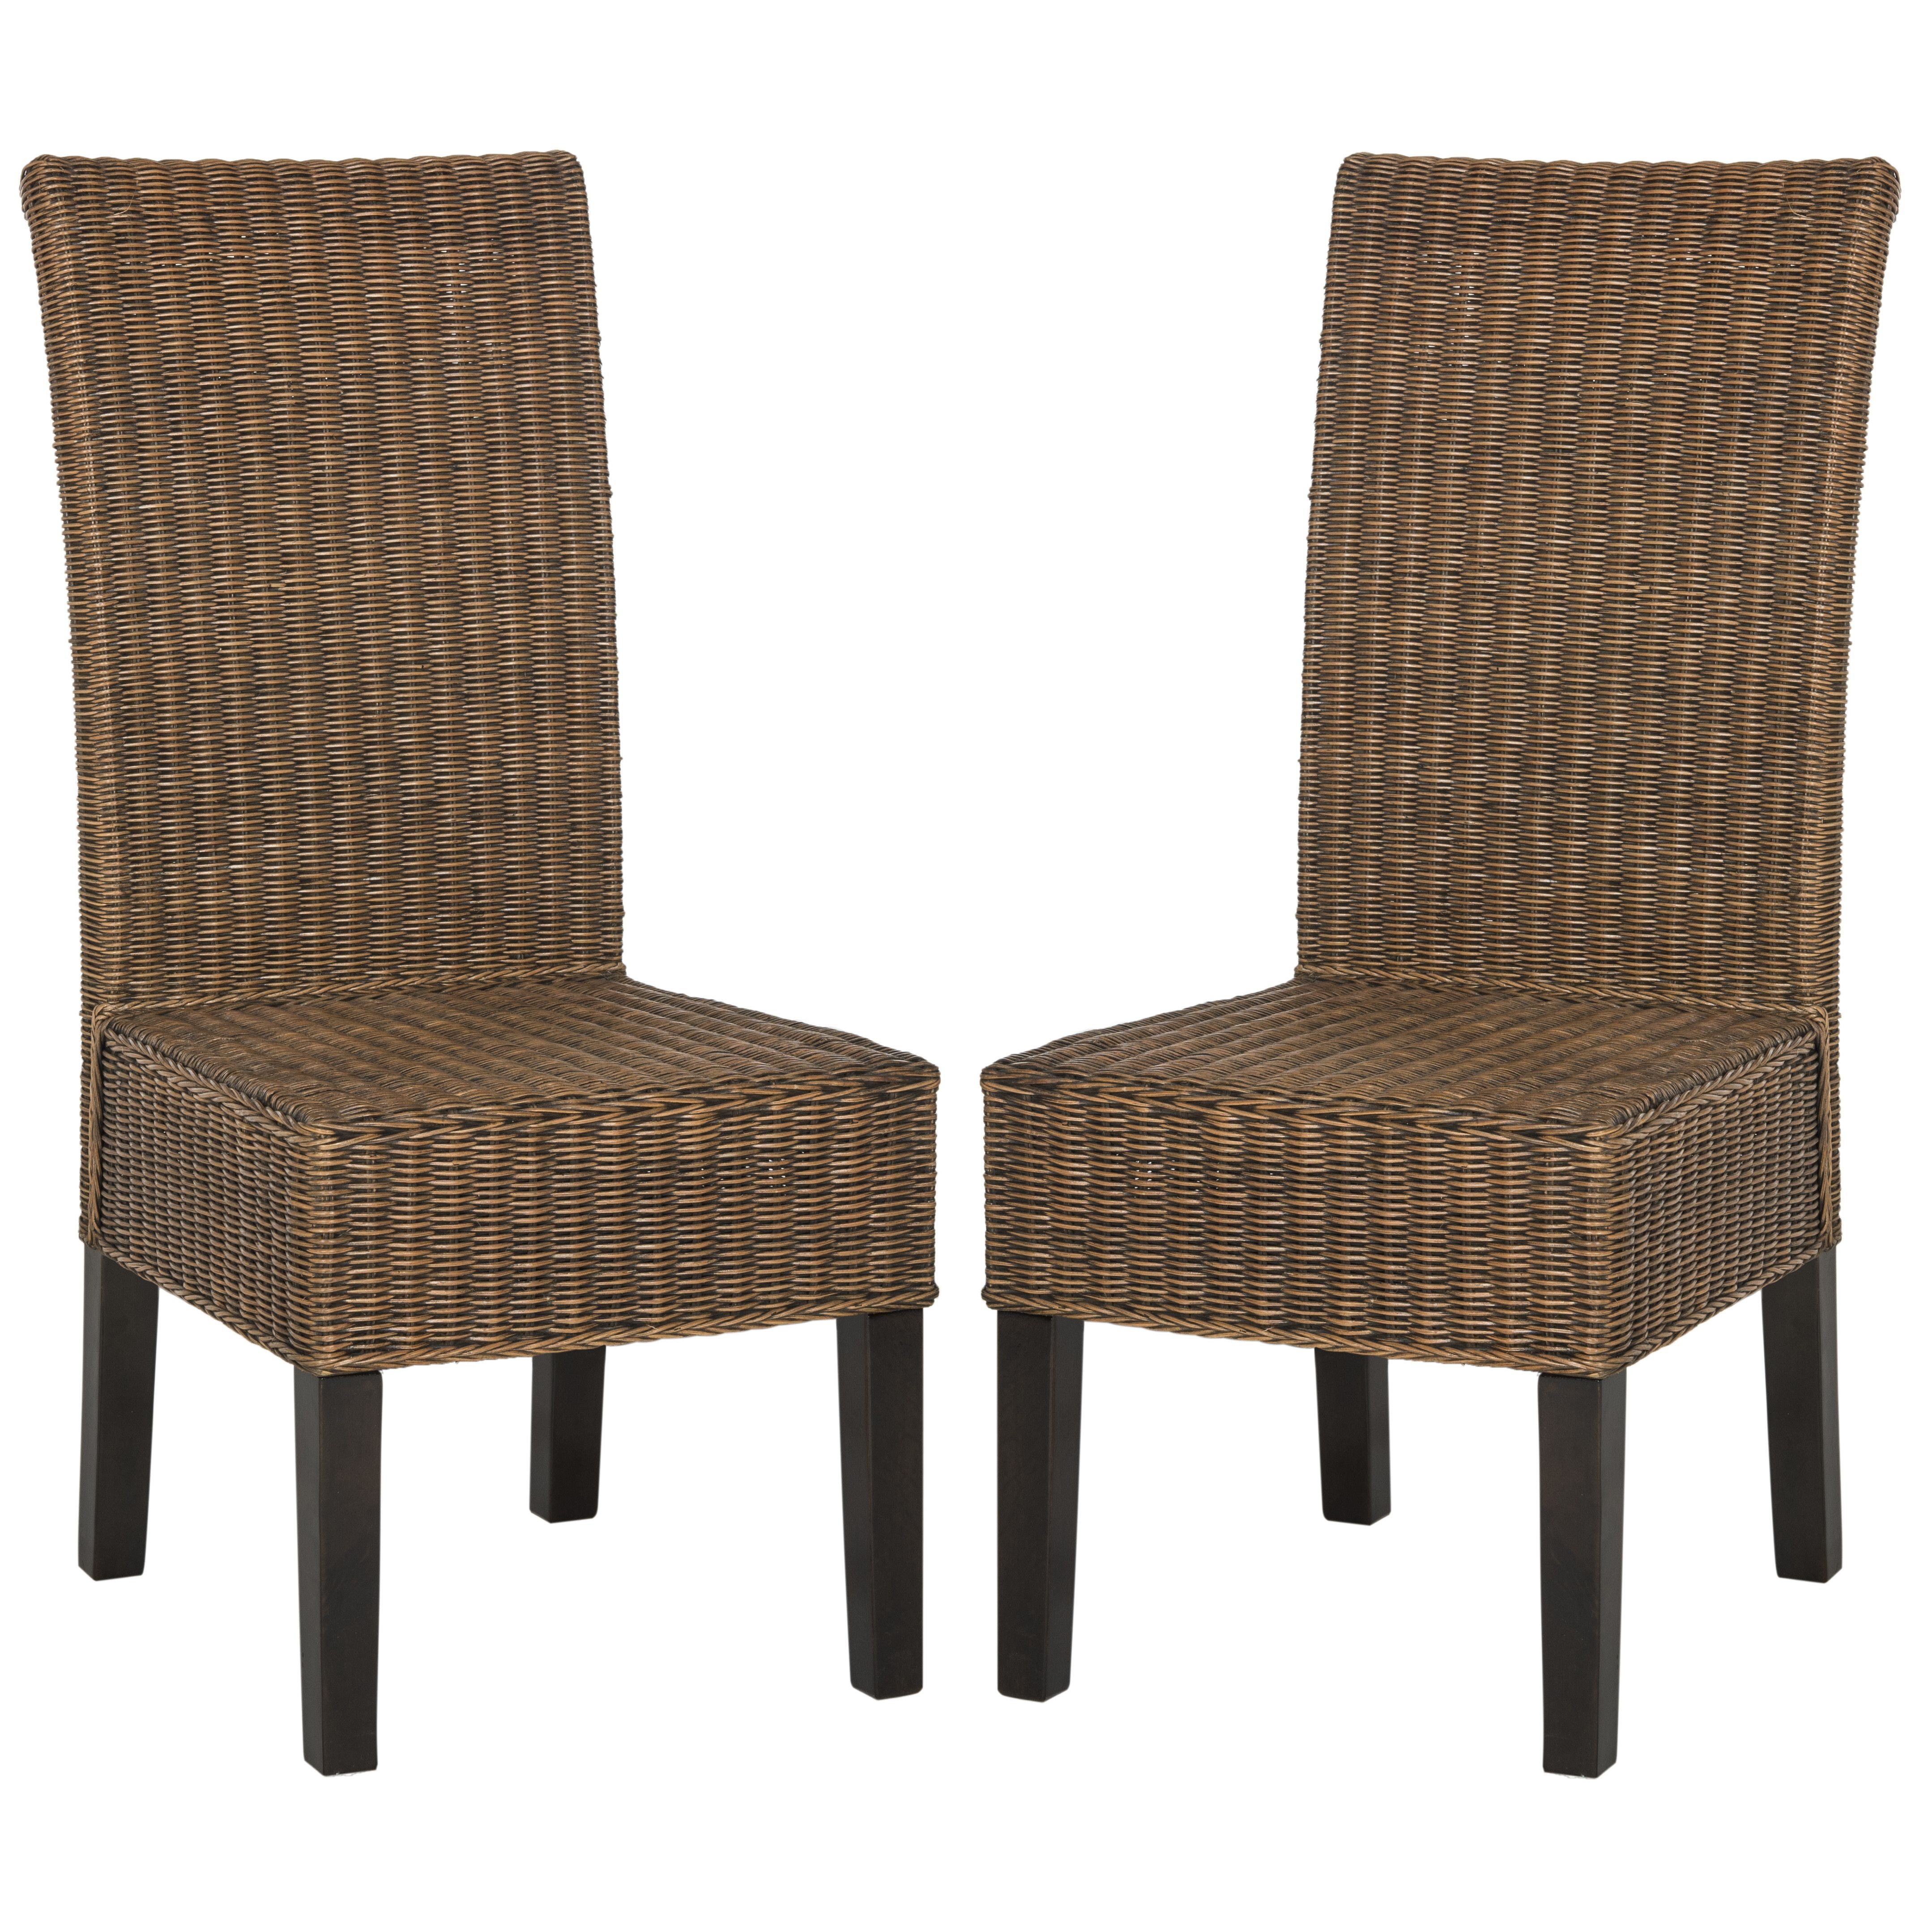 Willow Side Chair Wicker dining chairs, Dining chairs